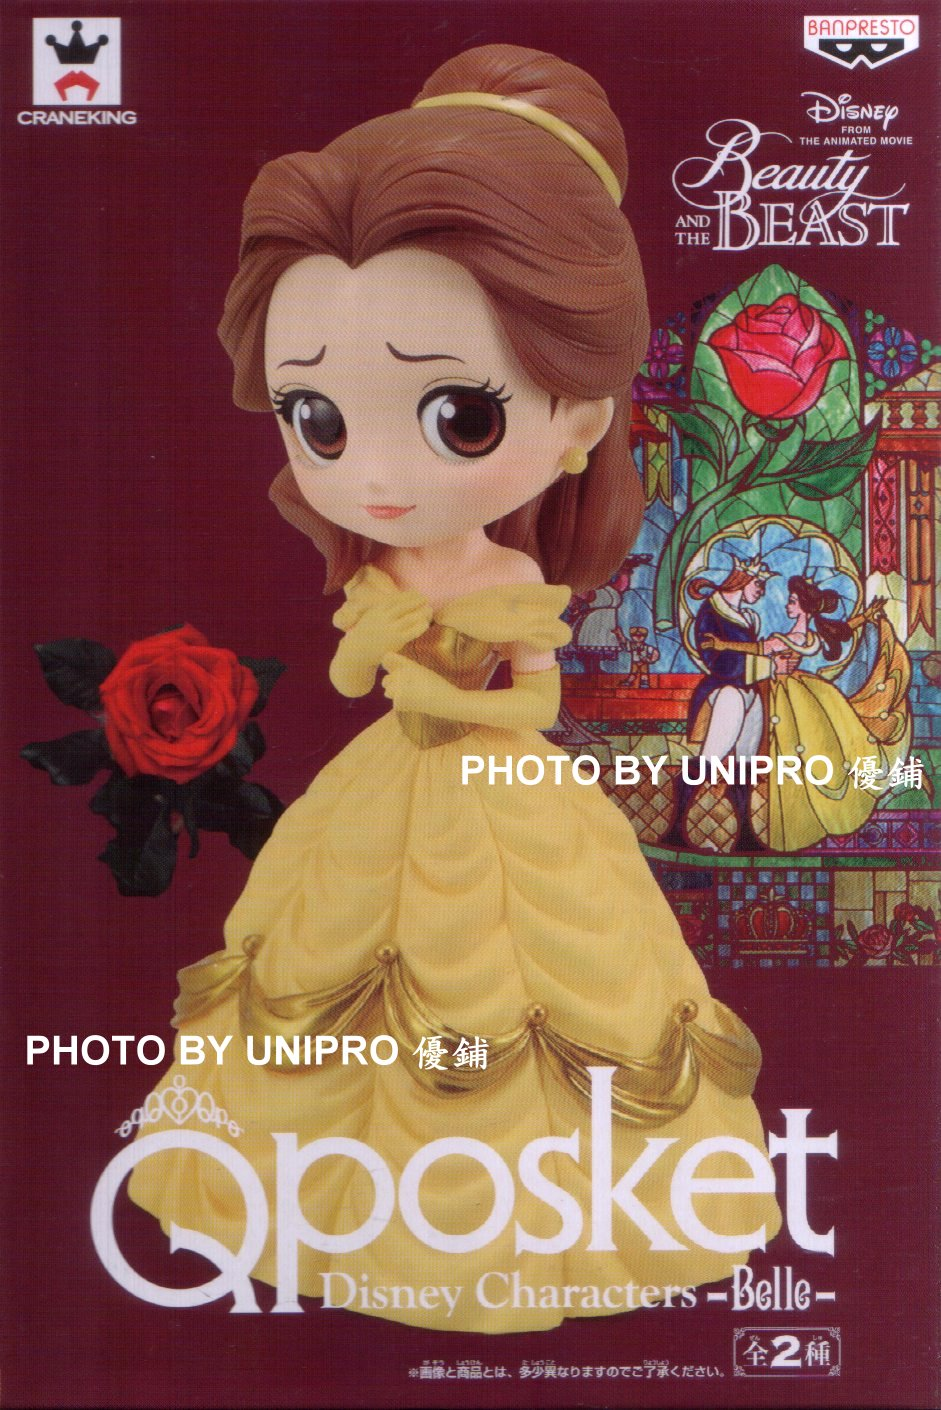 日版 Q Posket 美女與野獸 貝兒 一套兩款 迪士尼 Beauty and the Beast Qposket Disney Characters -Belle- 公仔